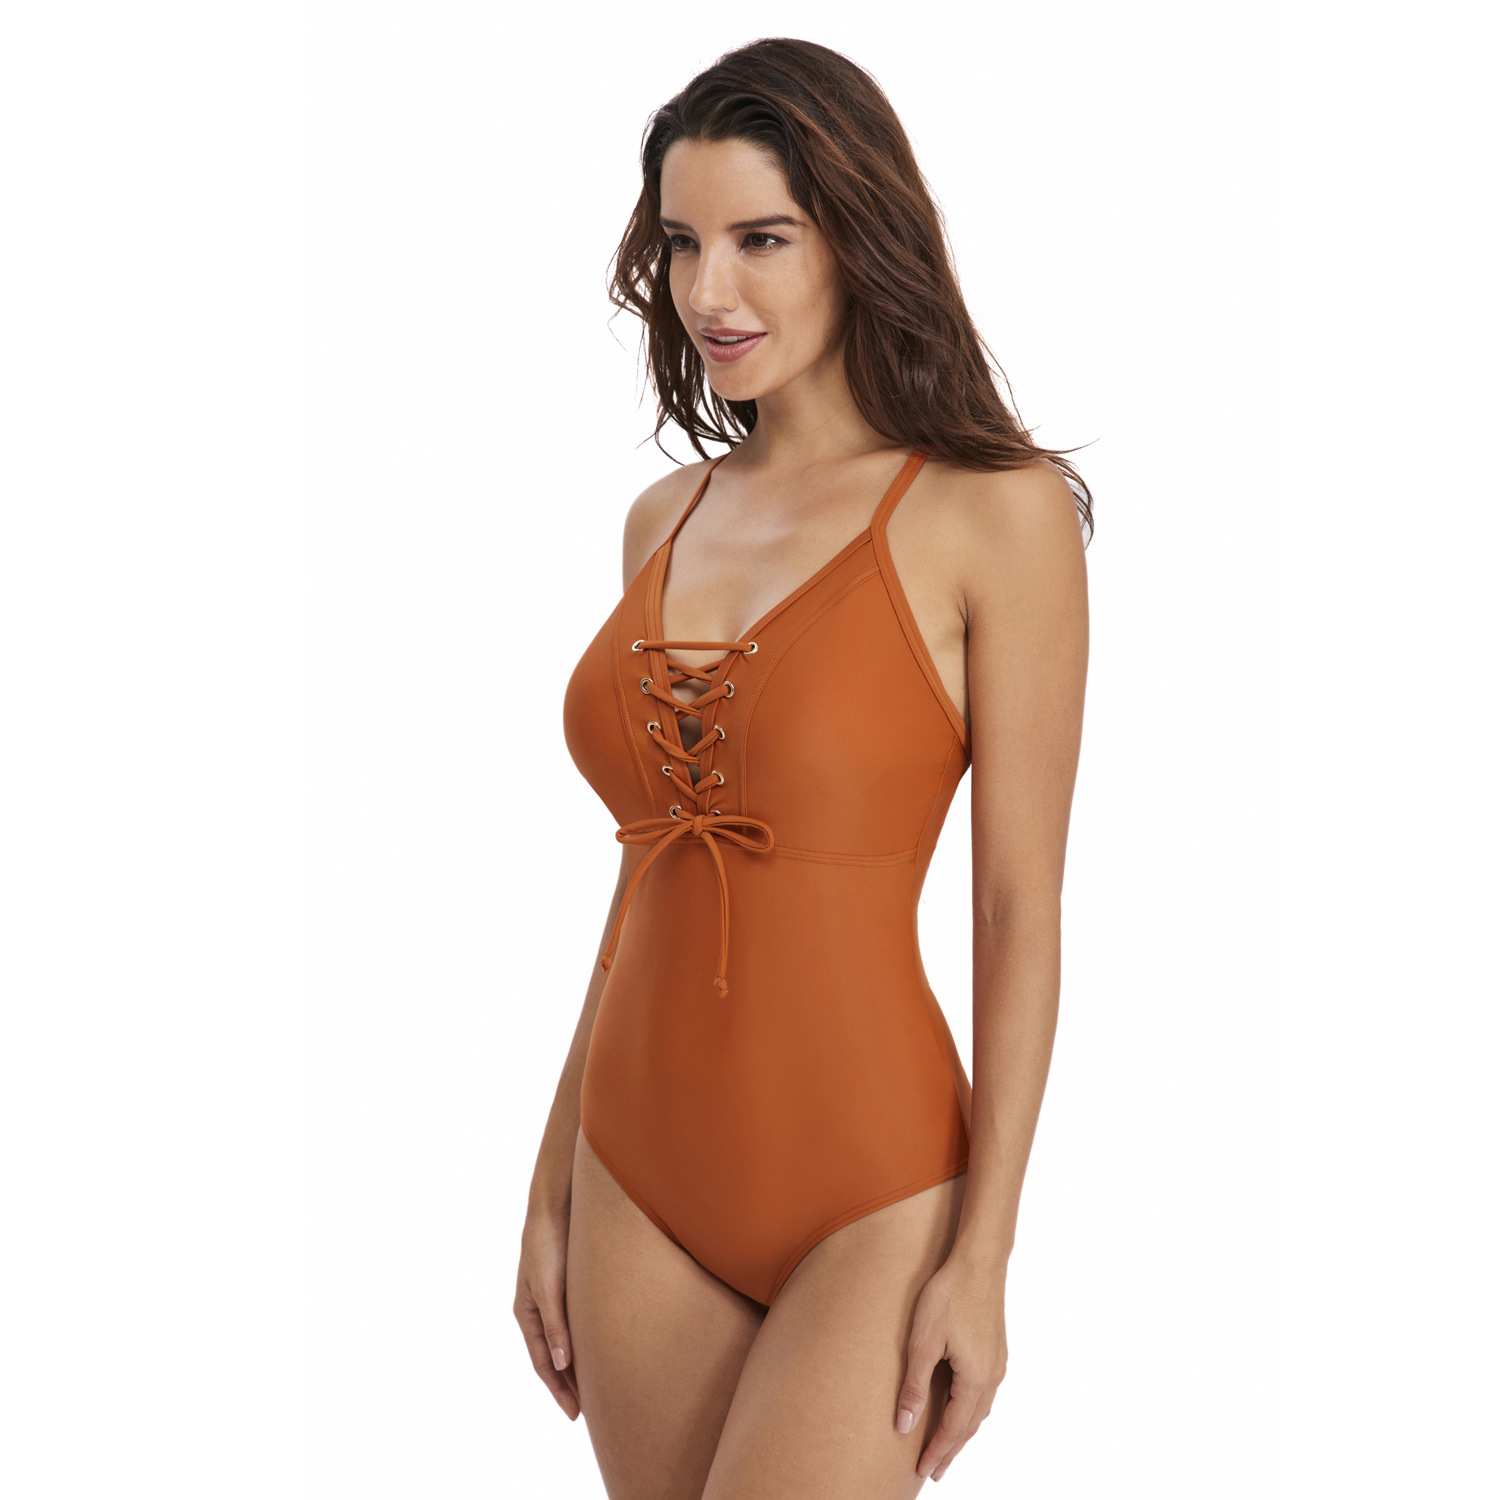 Women 39 s new solid color sexy halter strap triangle ladies one piece swimsuit Bikini in Body Suits from Sports amp Entertainment